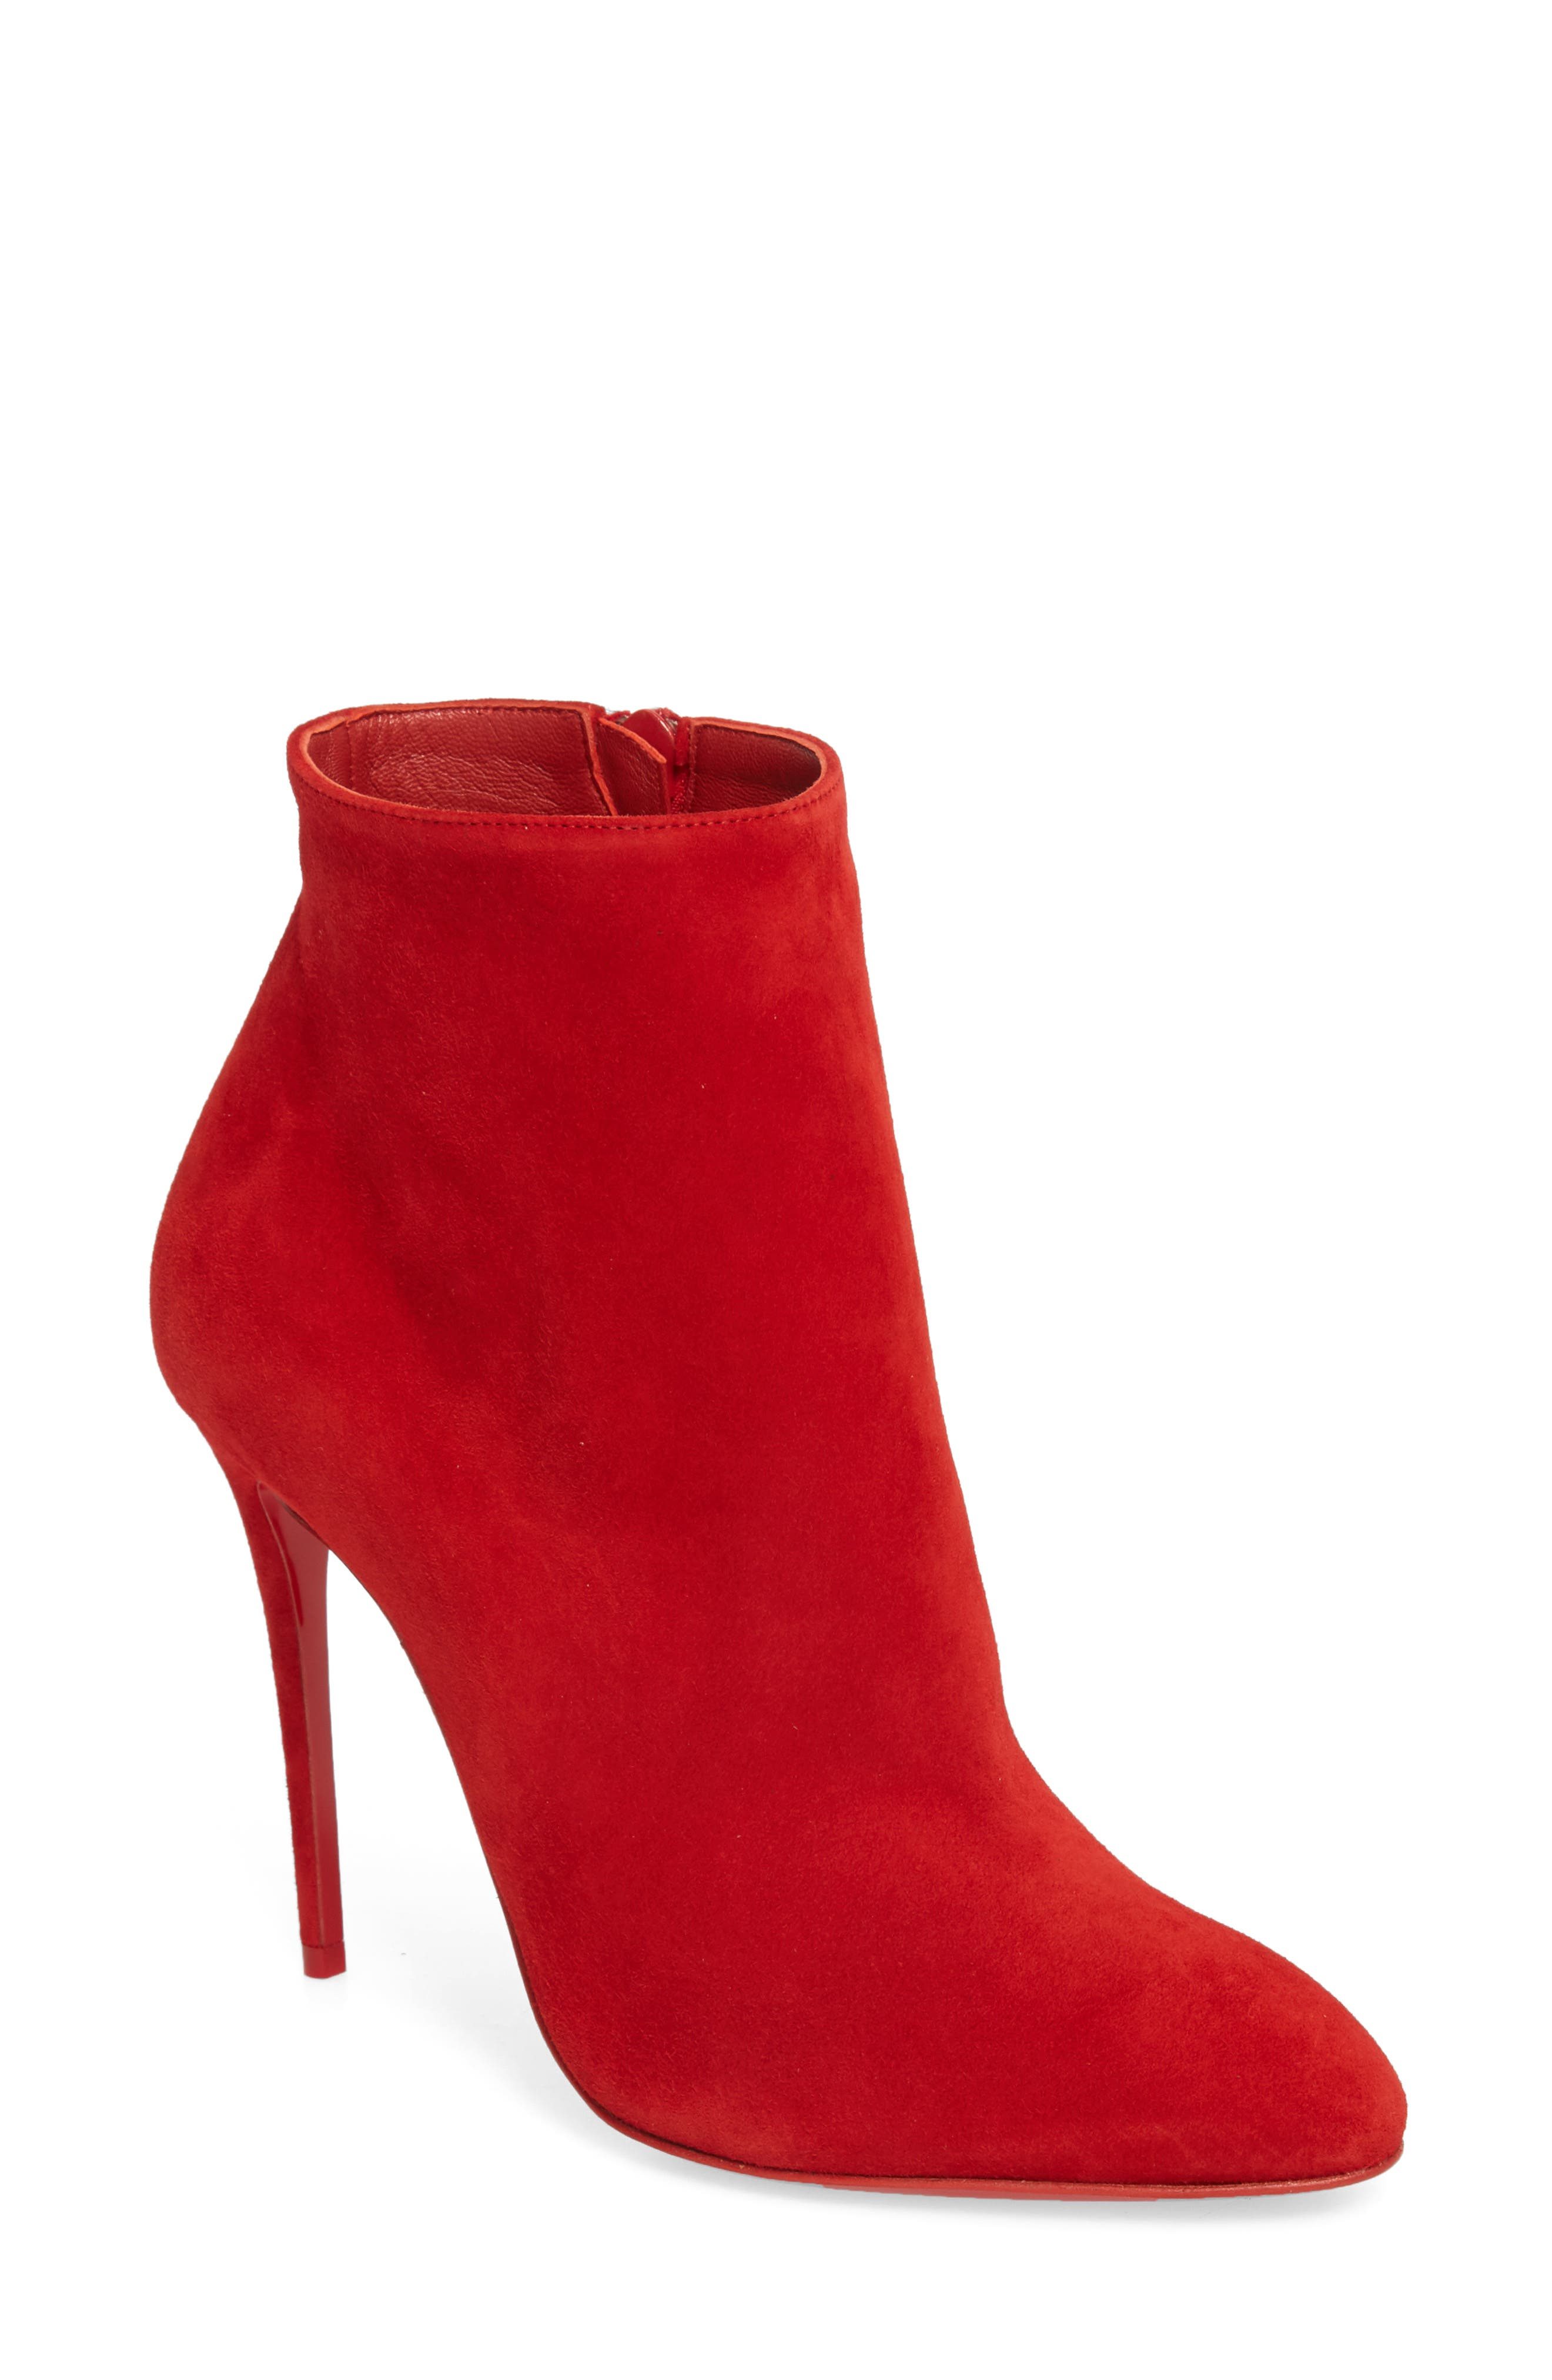 Christian Louboutin Eloise Almond Toe Bootie, Red